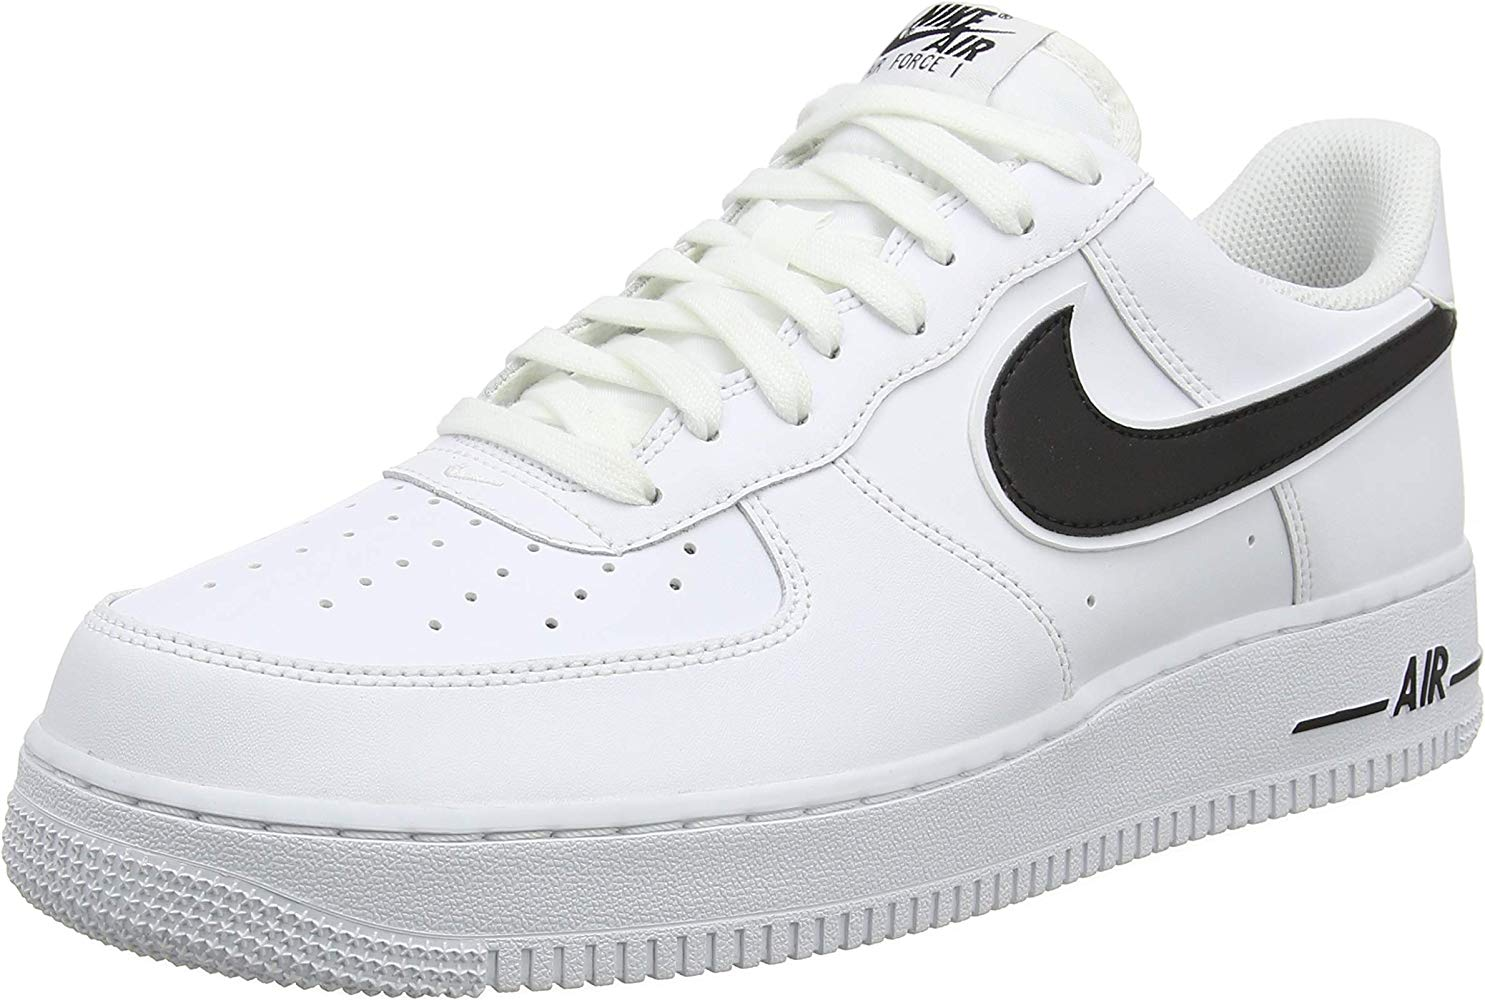 Billige Nike Air Force 1 25th Hohen Herren GA nstig